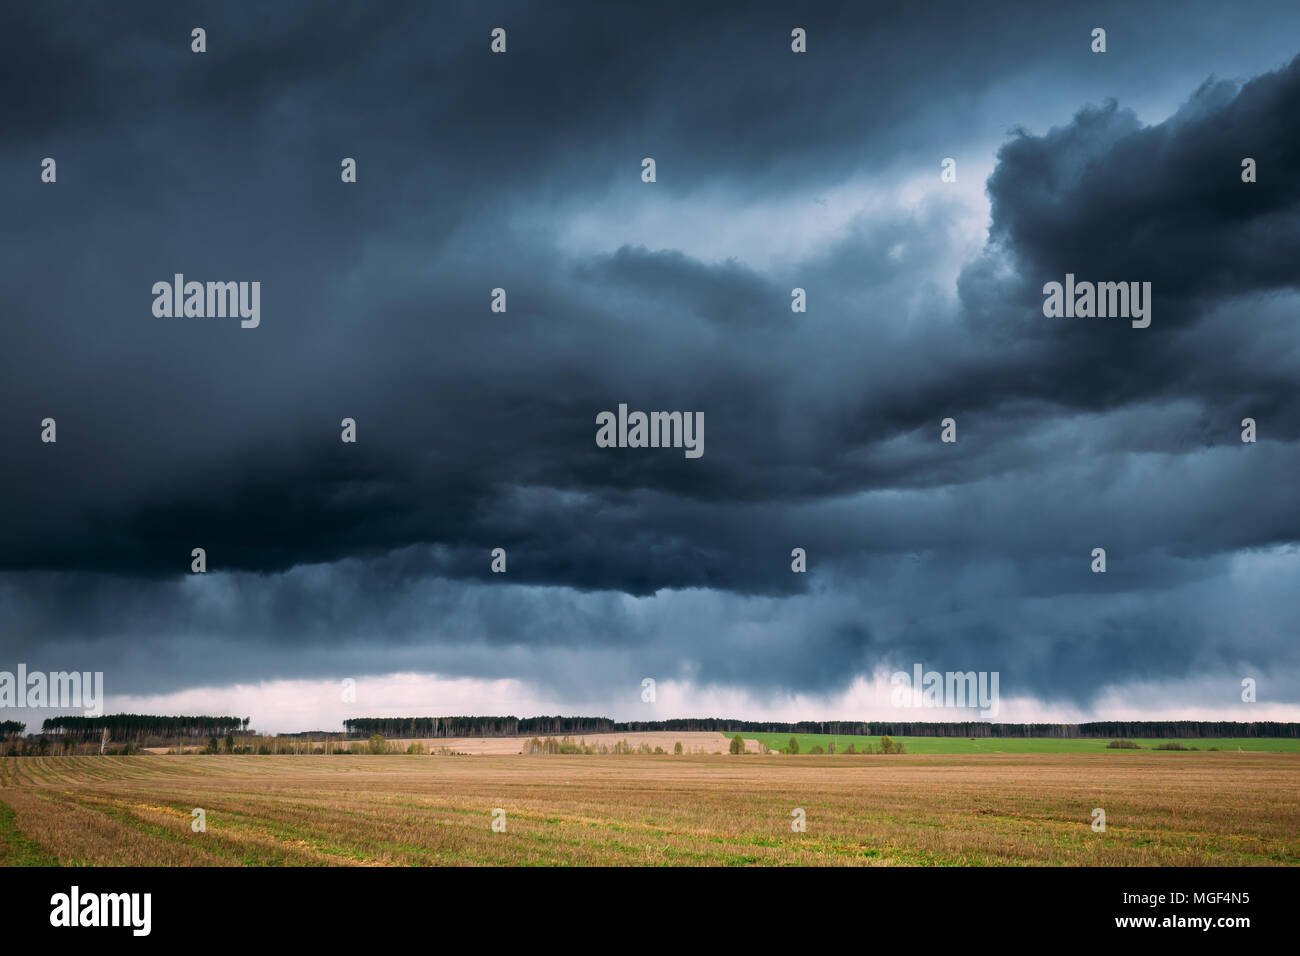 Countryside Rural Field Spring Meadow Landscape Under Scenic Dramatic Sky Before Rain. Rain Clouds On Horizon. Agricultural And Weather Forecast Conce - Stock Image